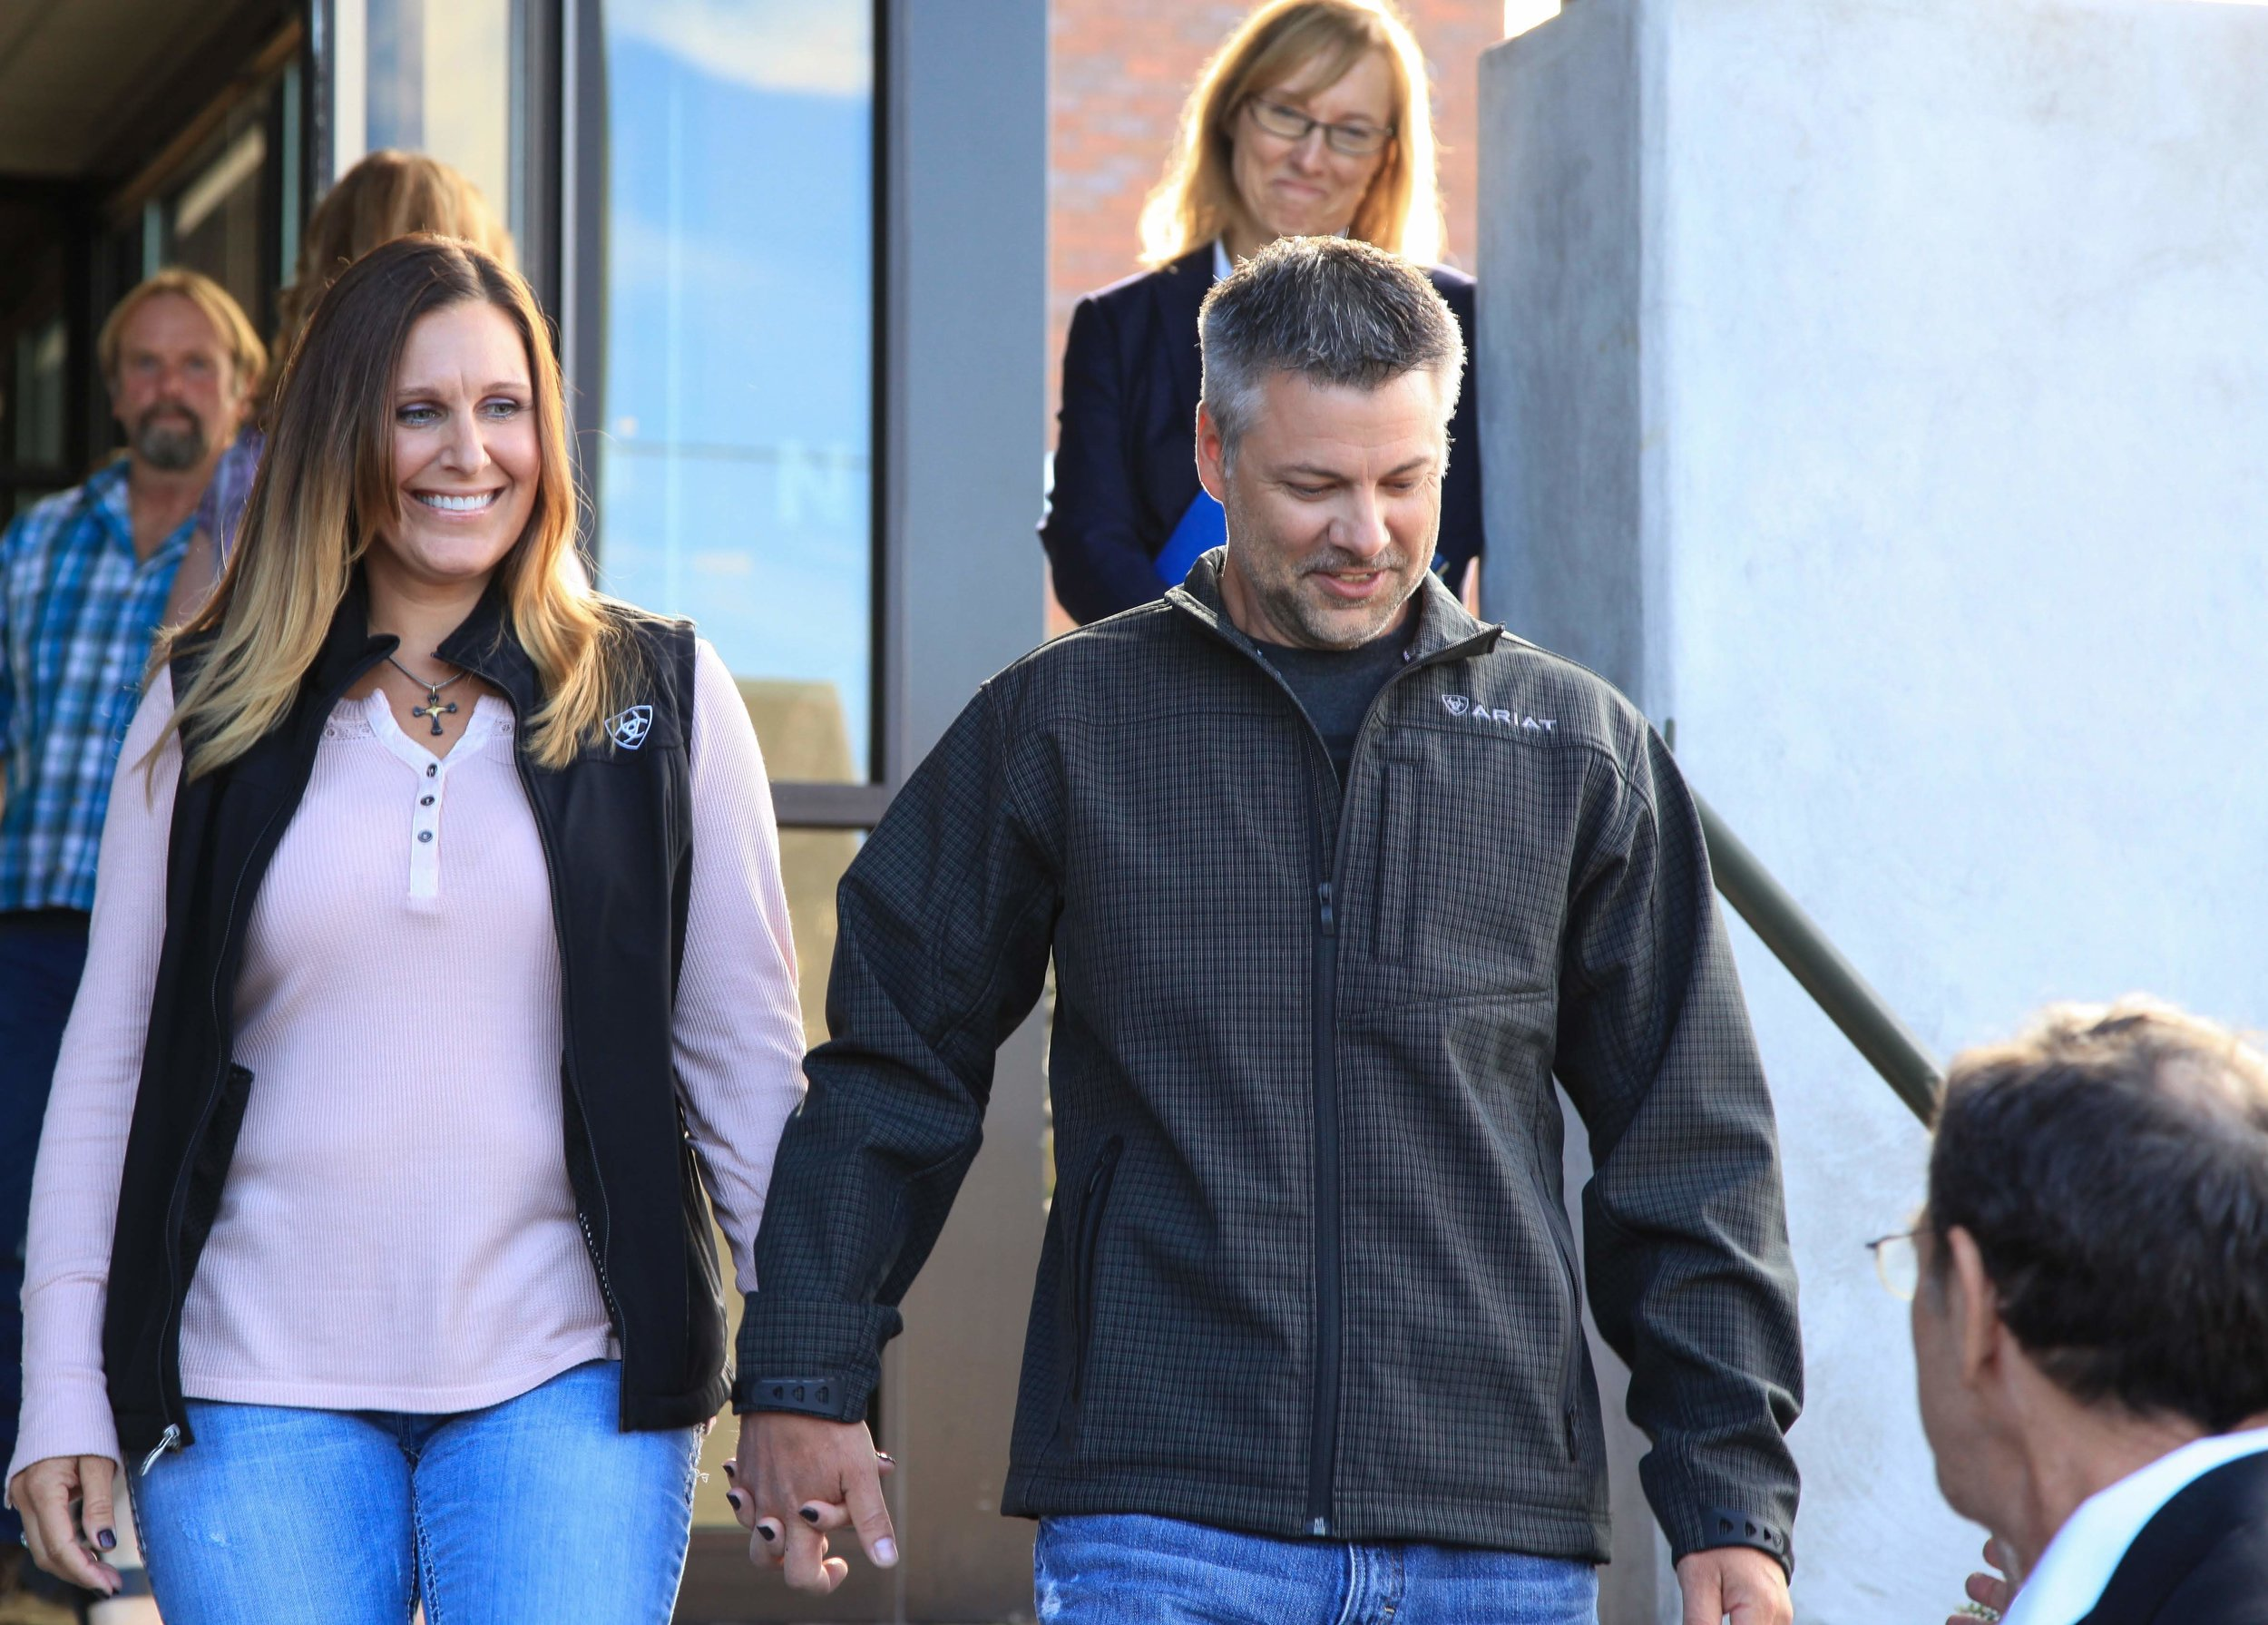 Kelli and Josh Horner leaving court. Photo by Jenny Coleman.